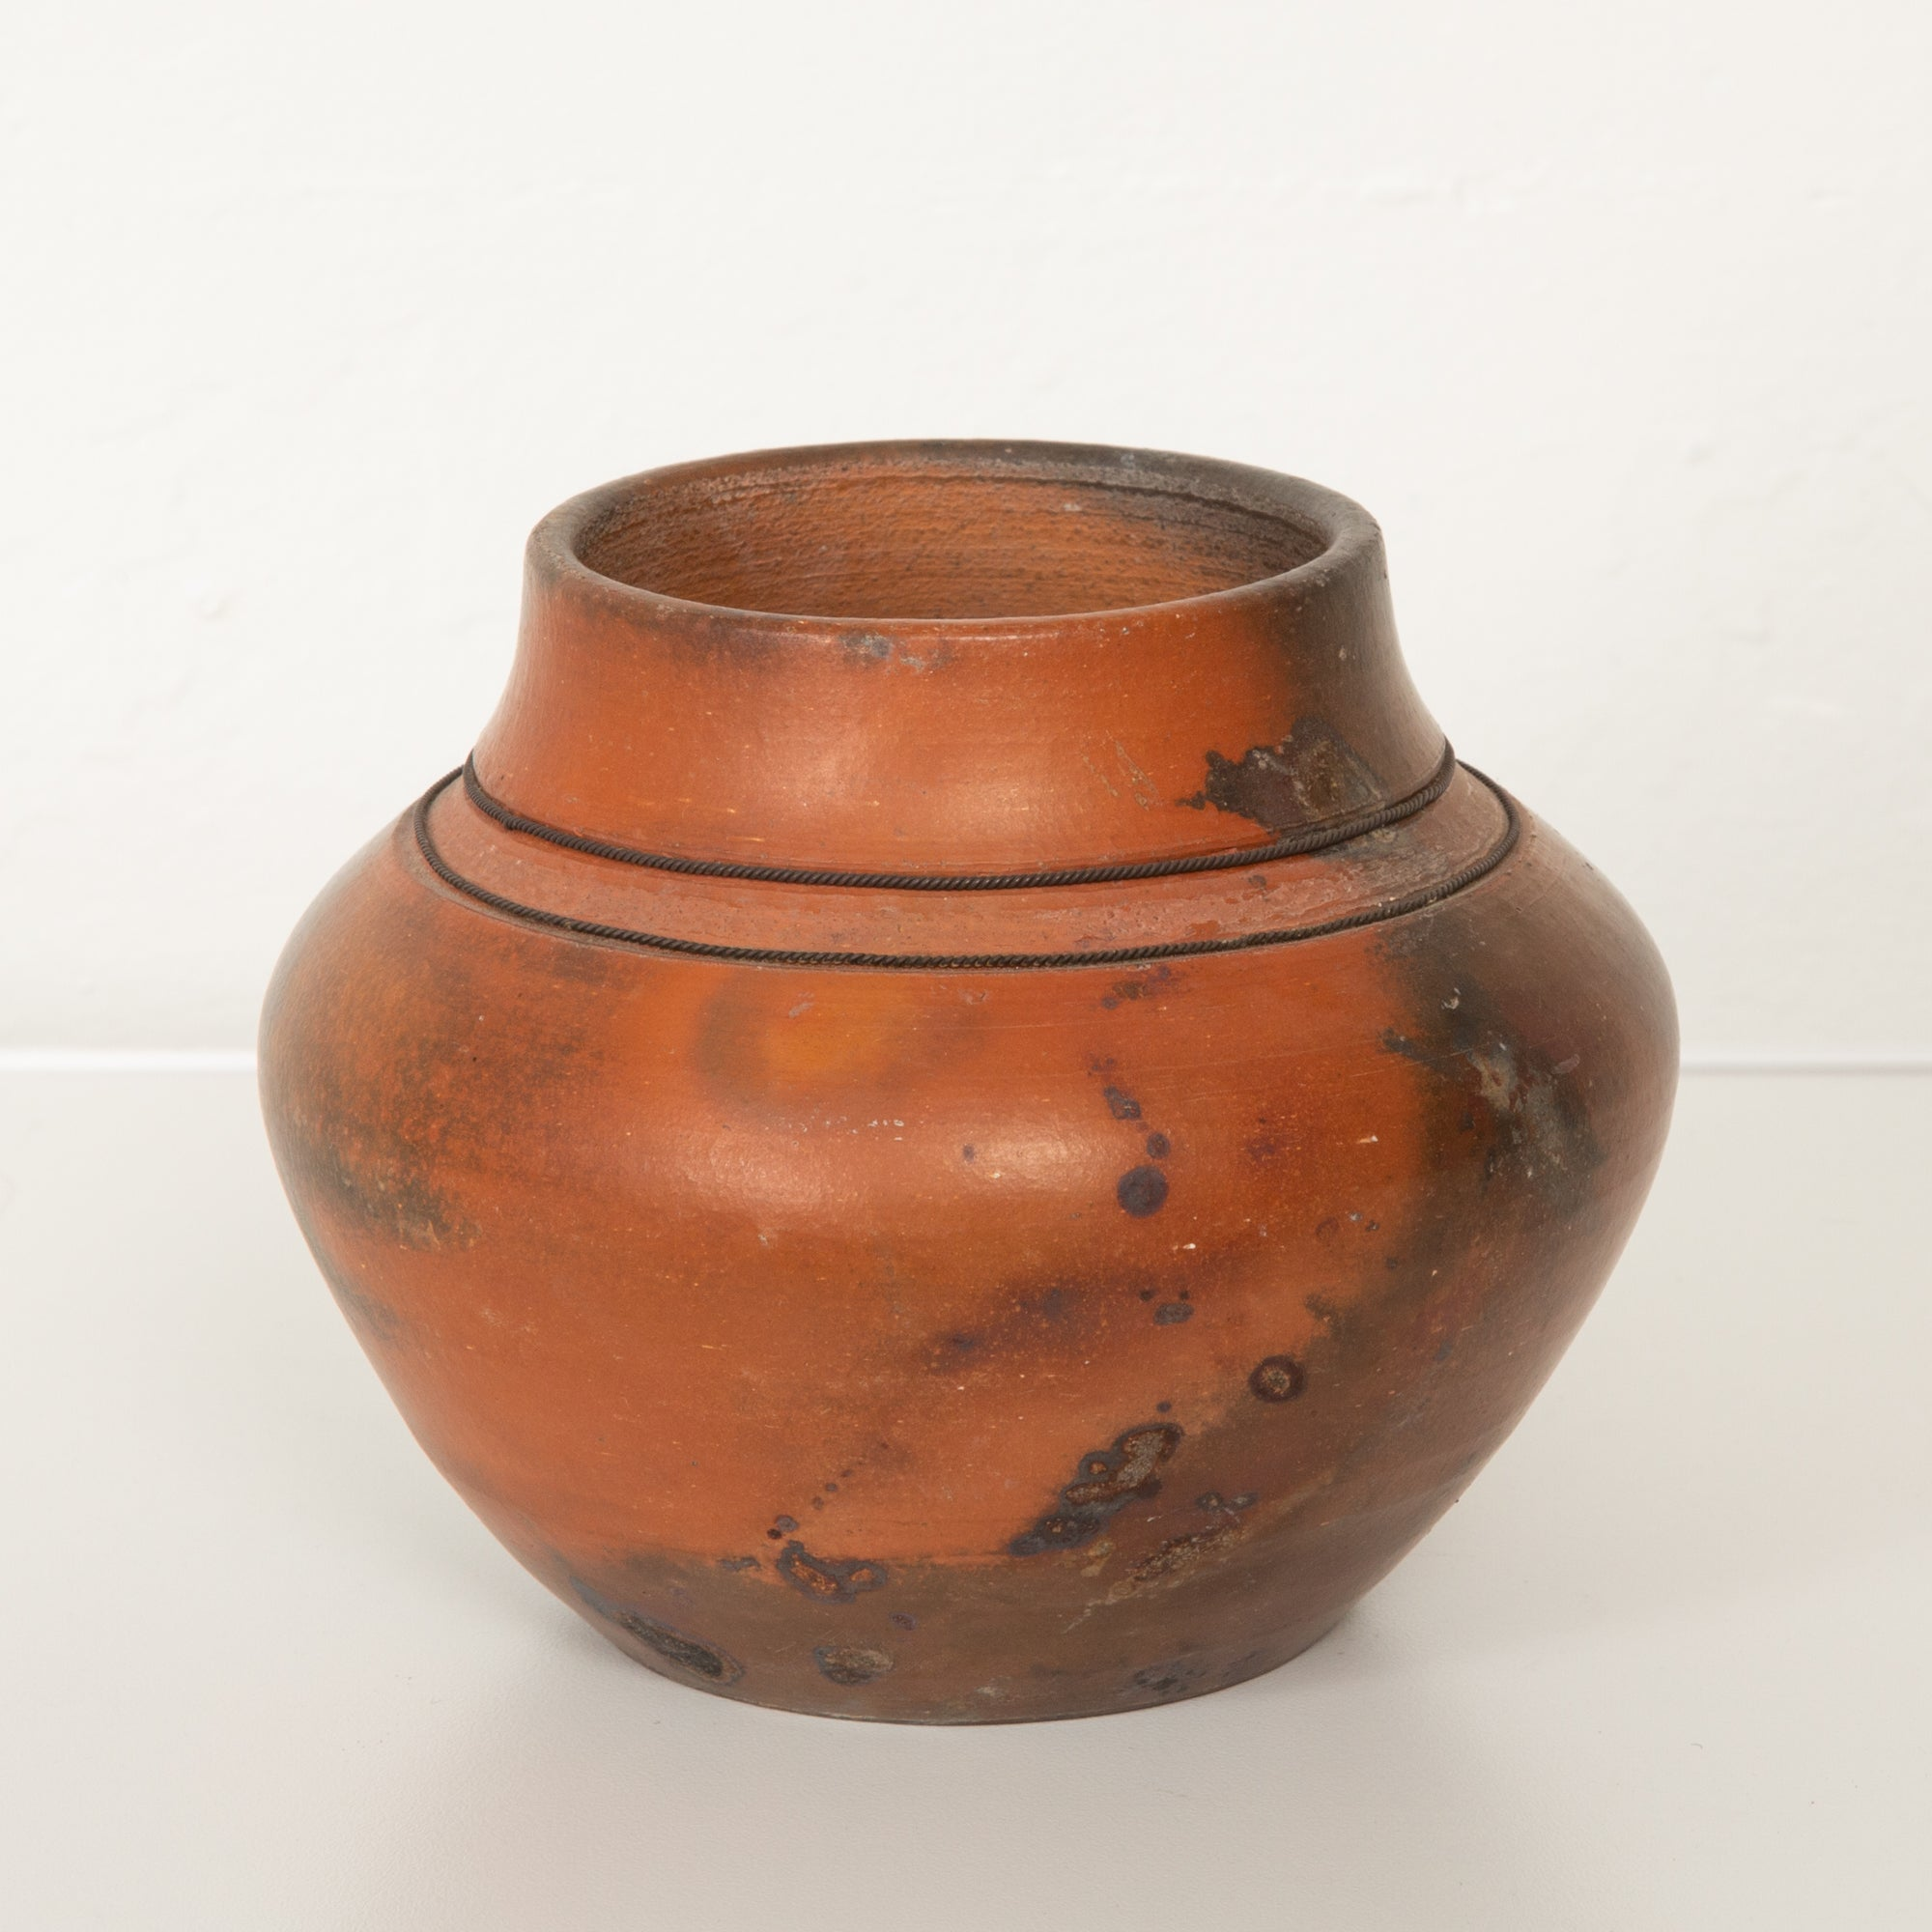 Studio Ceramic Vase with Raku Glaze